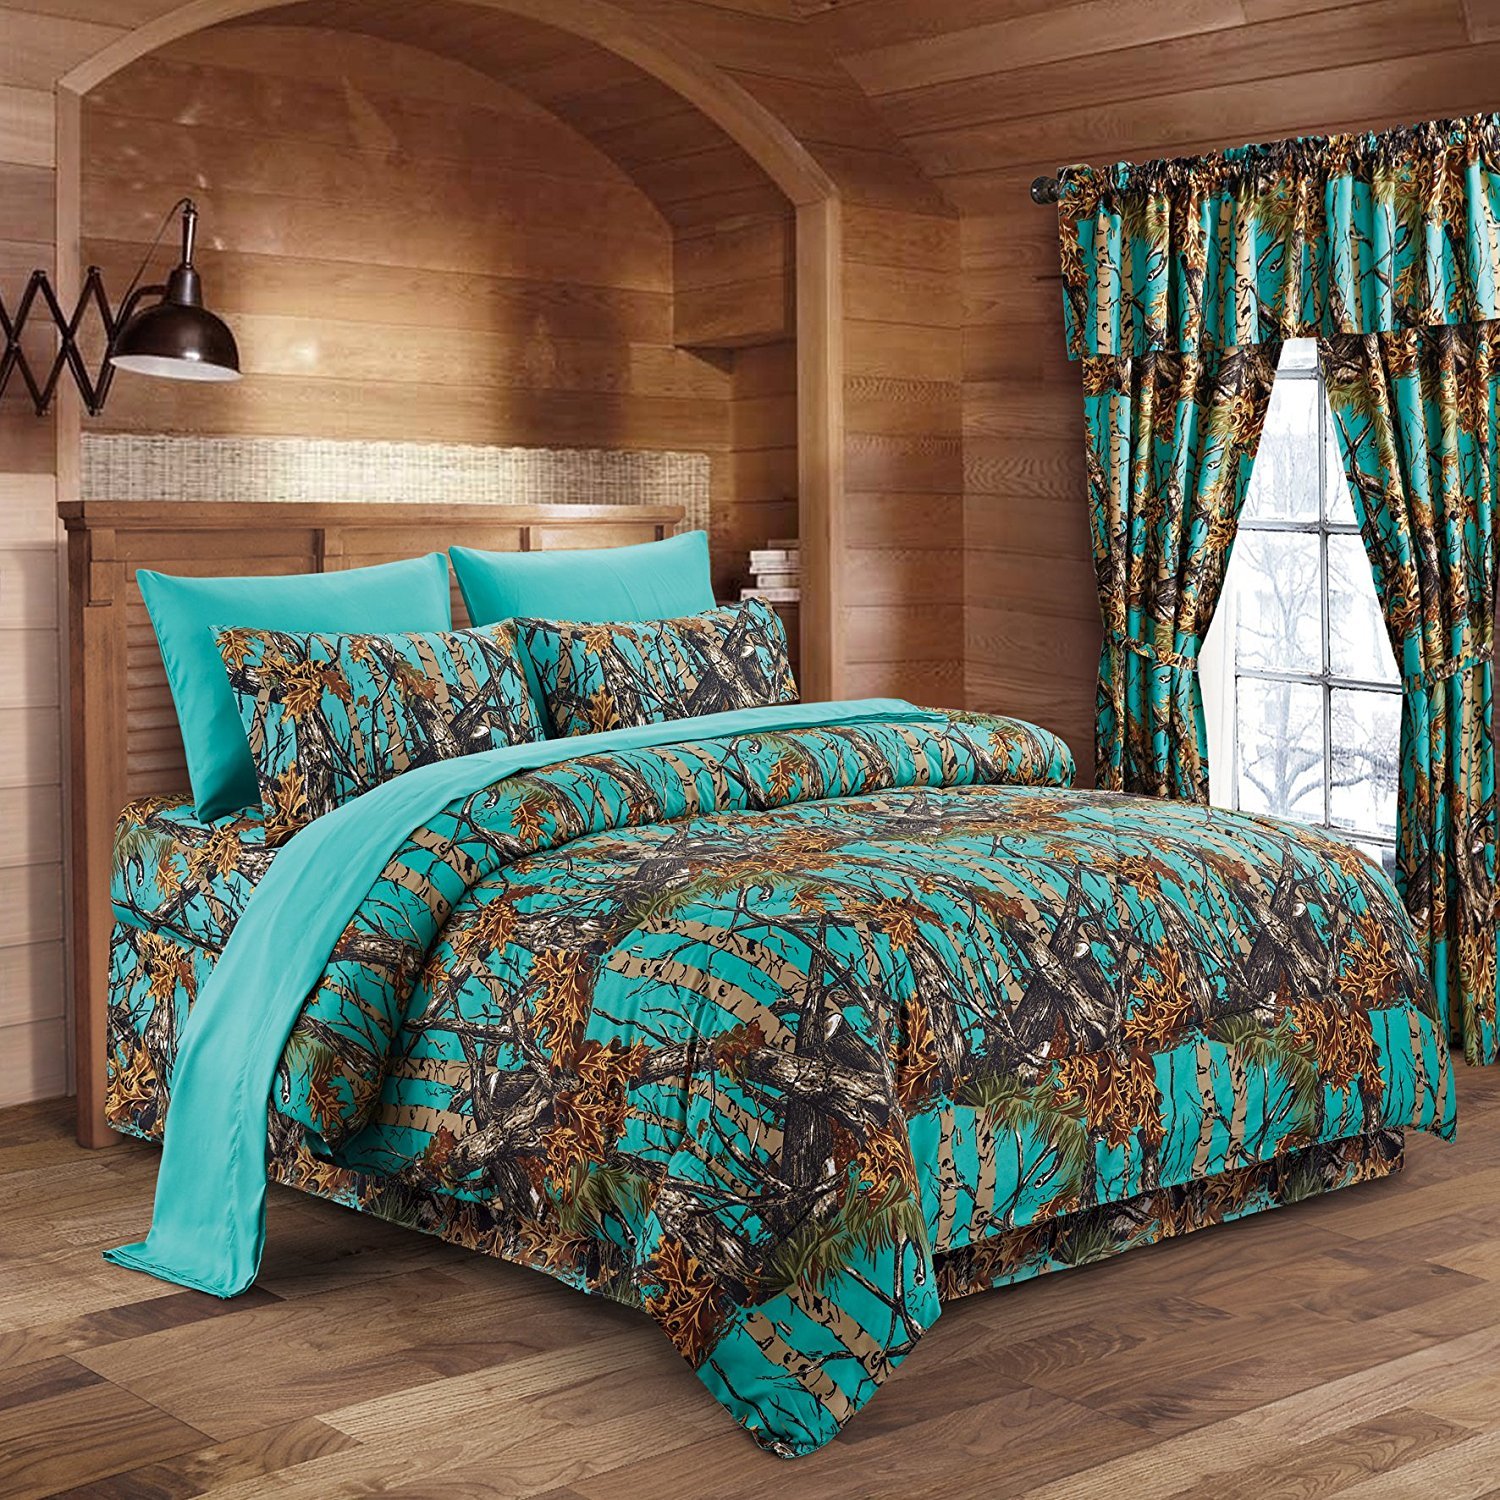 (The Woods Soft Teal Green Camouflage Queen 7pc.Premium